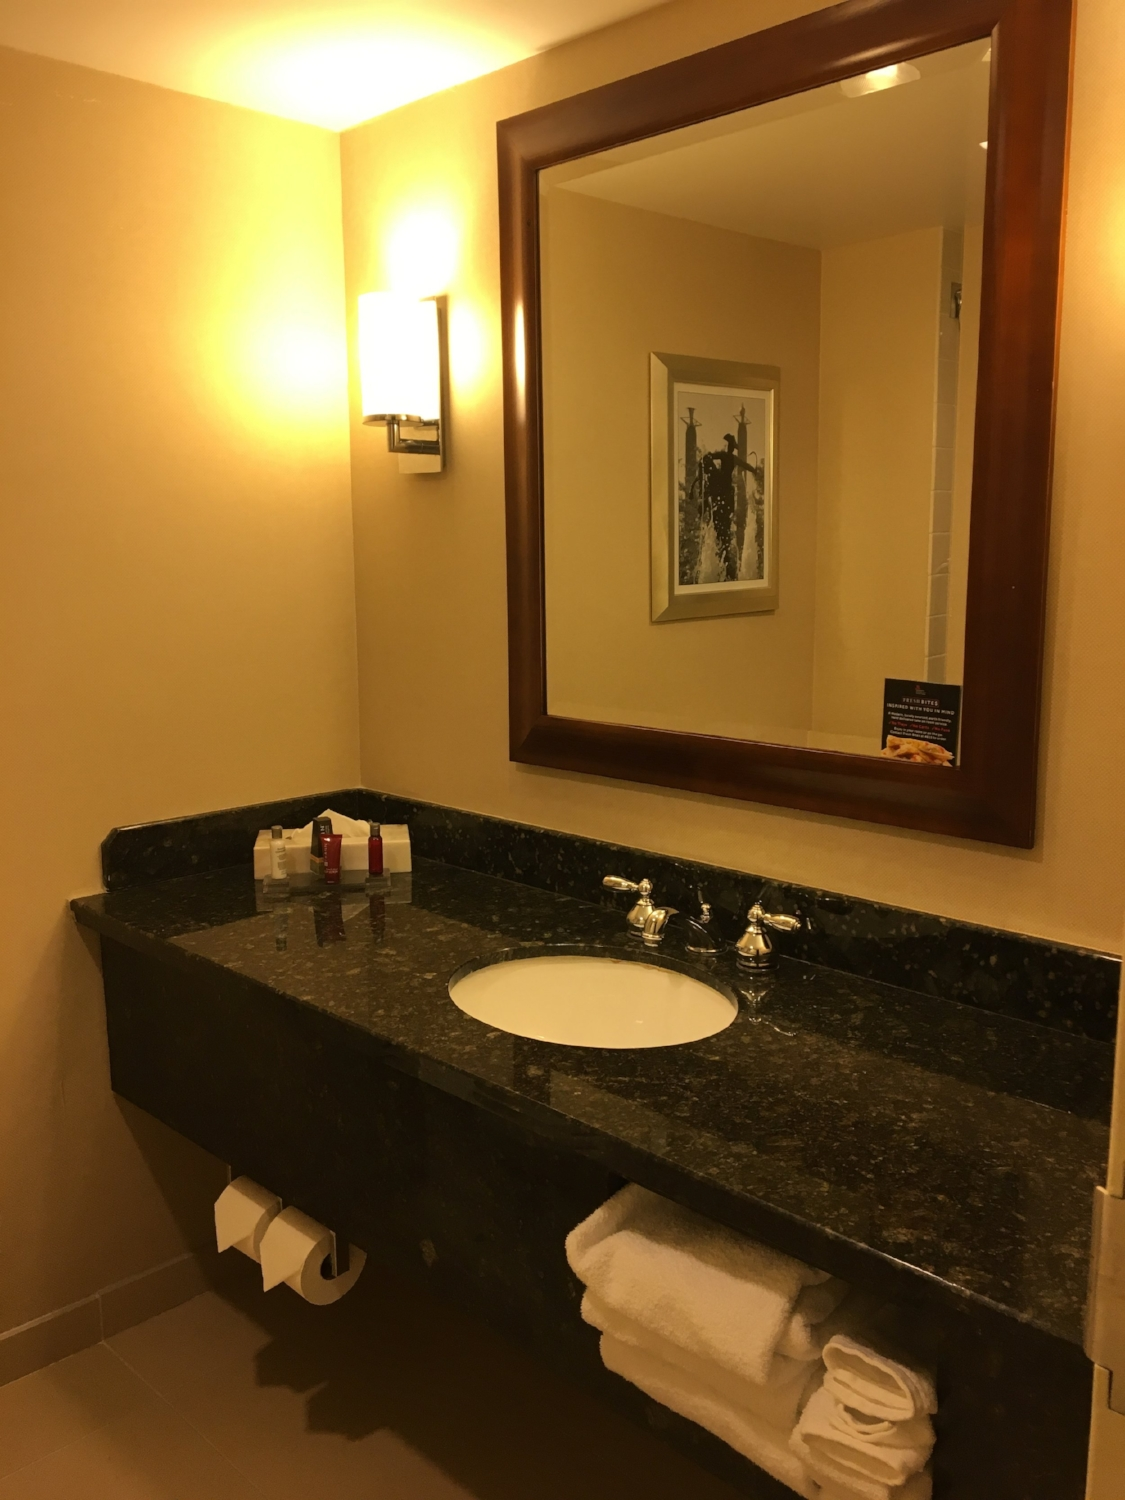 KANSAS CITY MARRIOTT DOWNTOWN GUEST ROOM